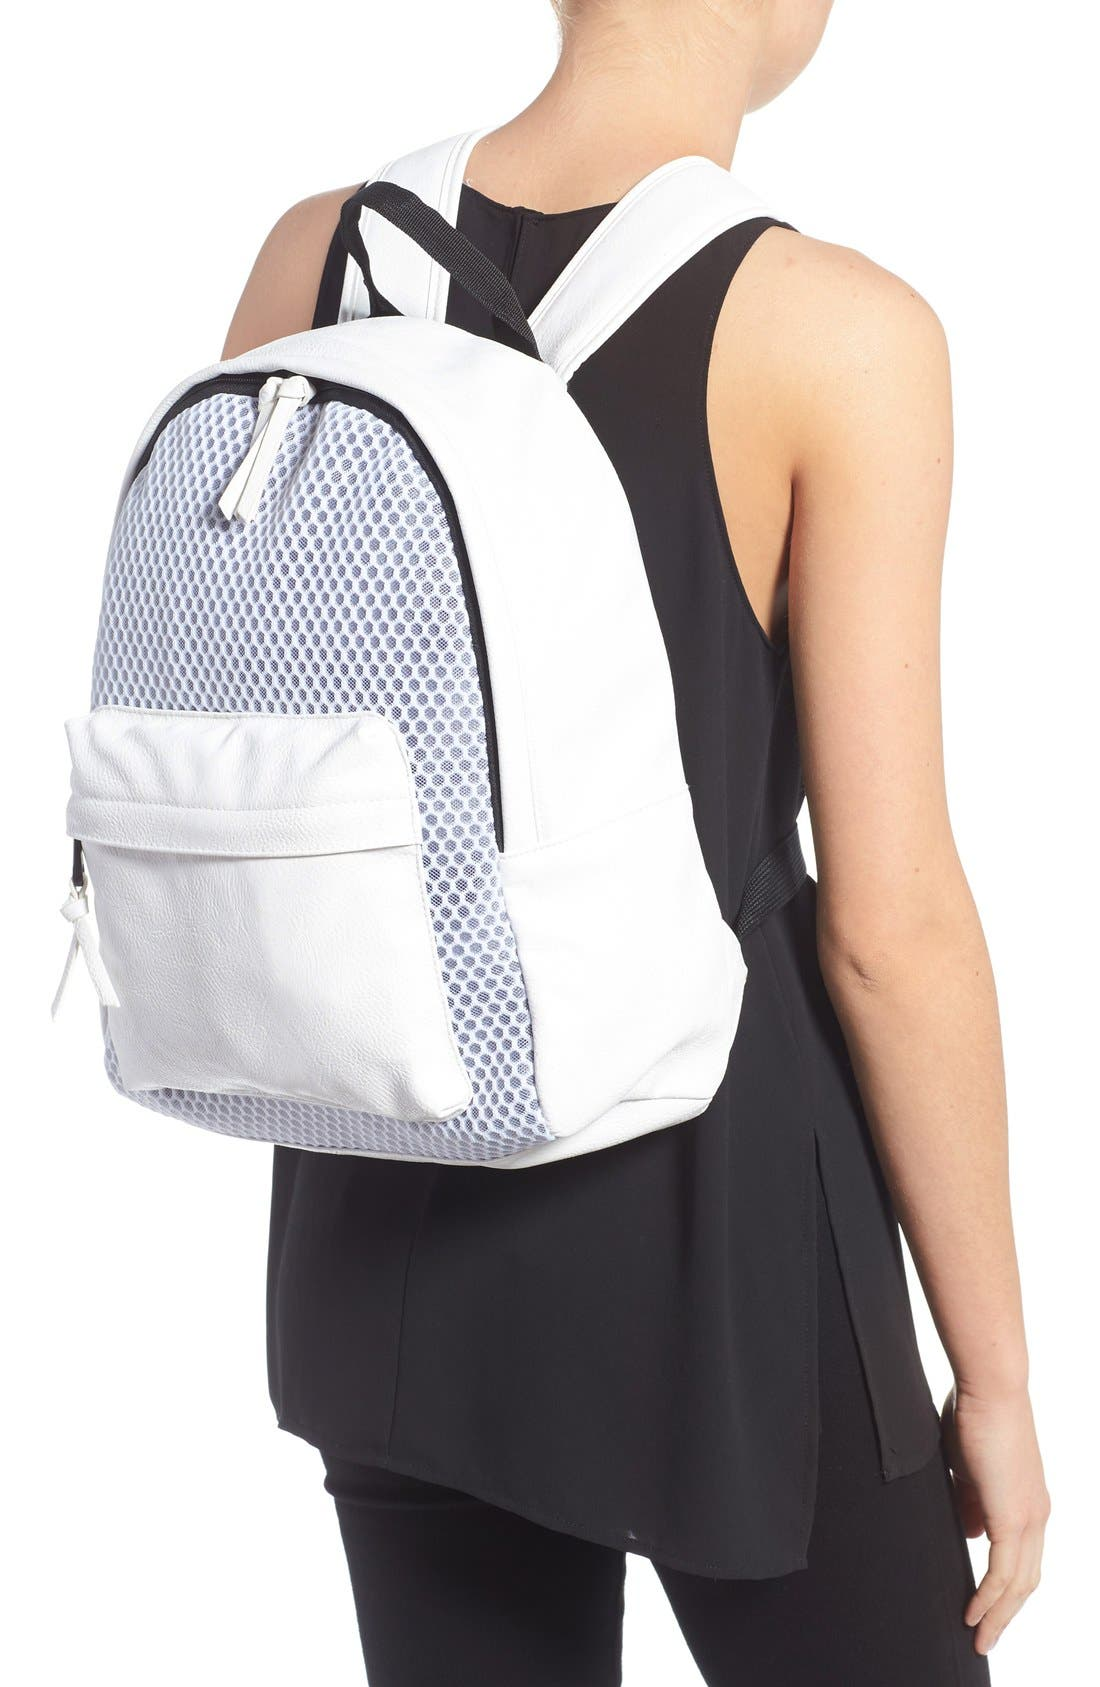 Alternate Image 2  - POVERTY FLATS by rian 'Sport' Faux Leather & Mesh Backpack